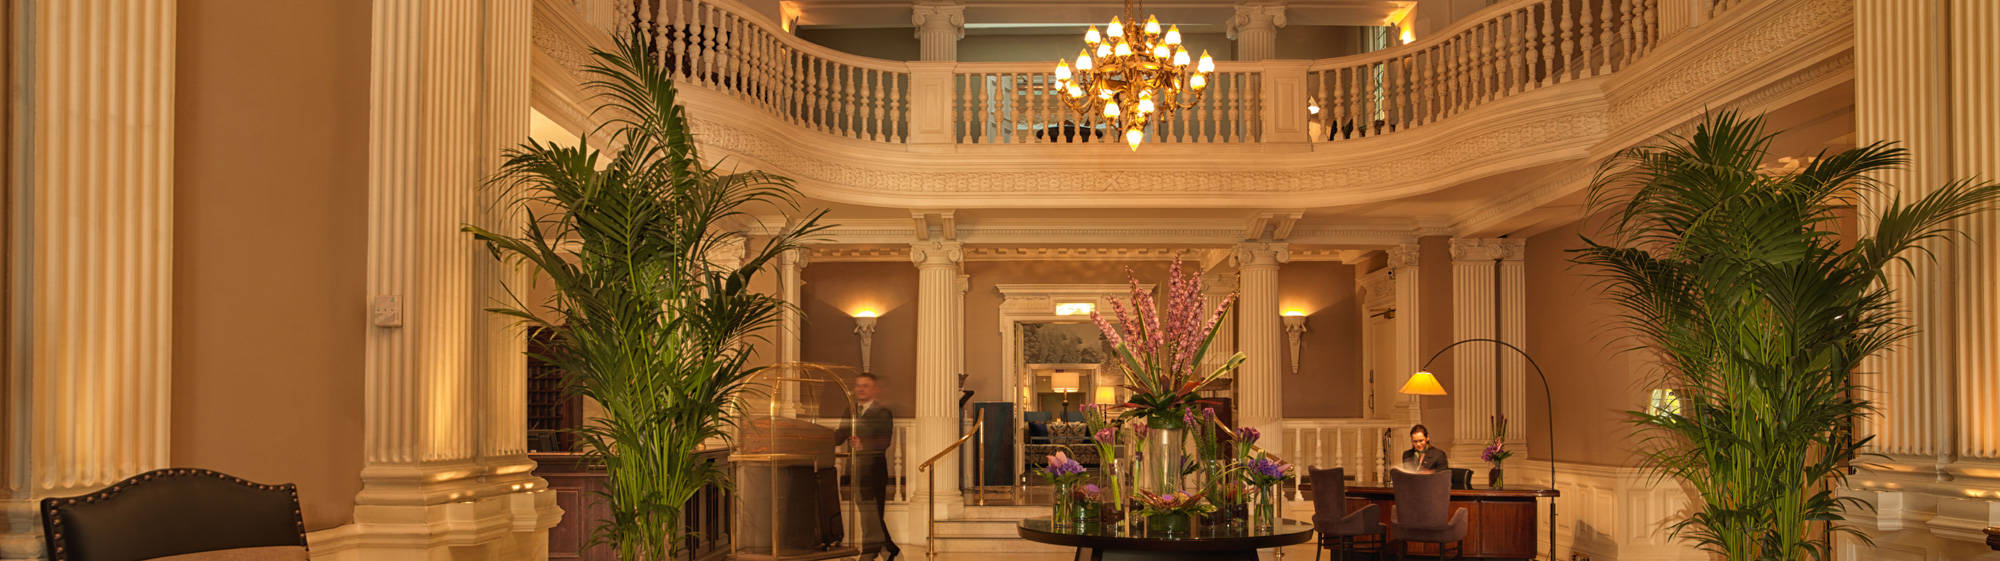 Luxury Hotel Edinburgh